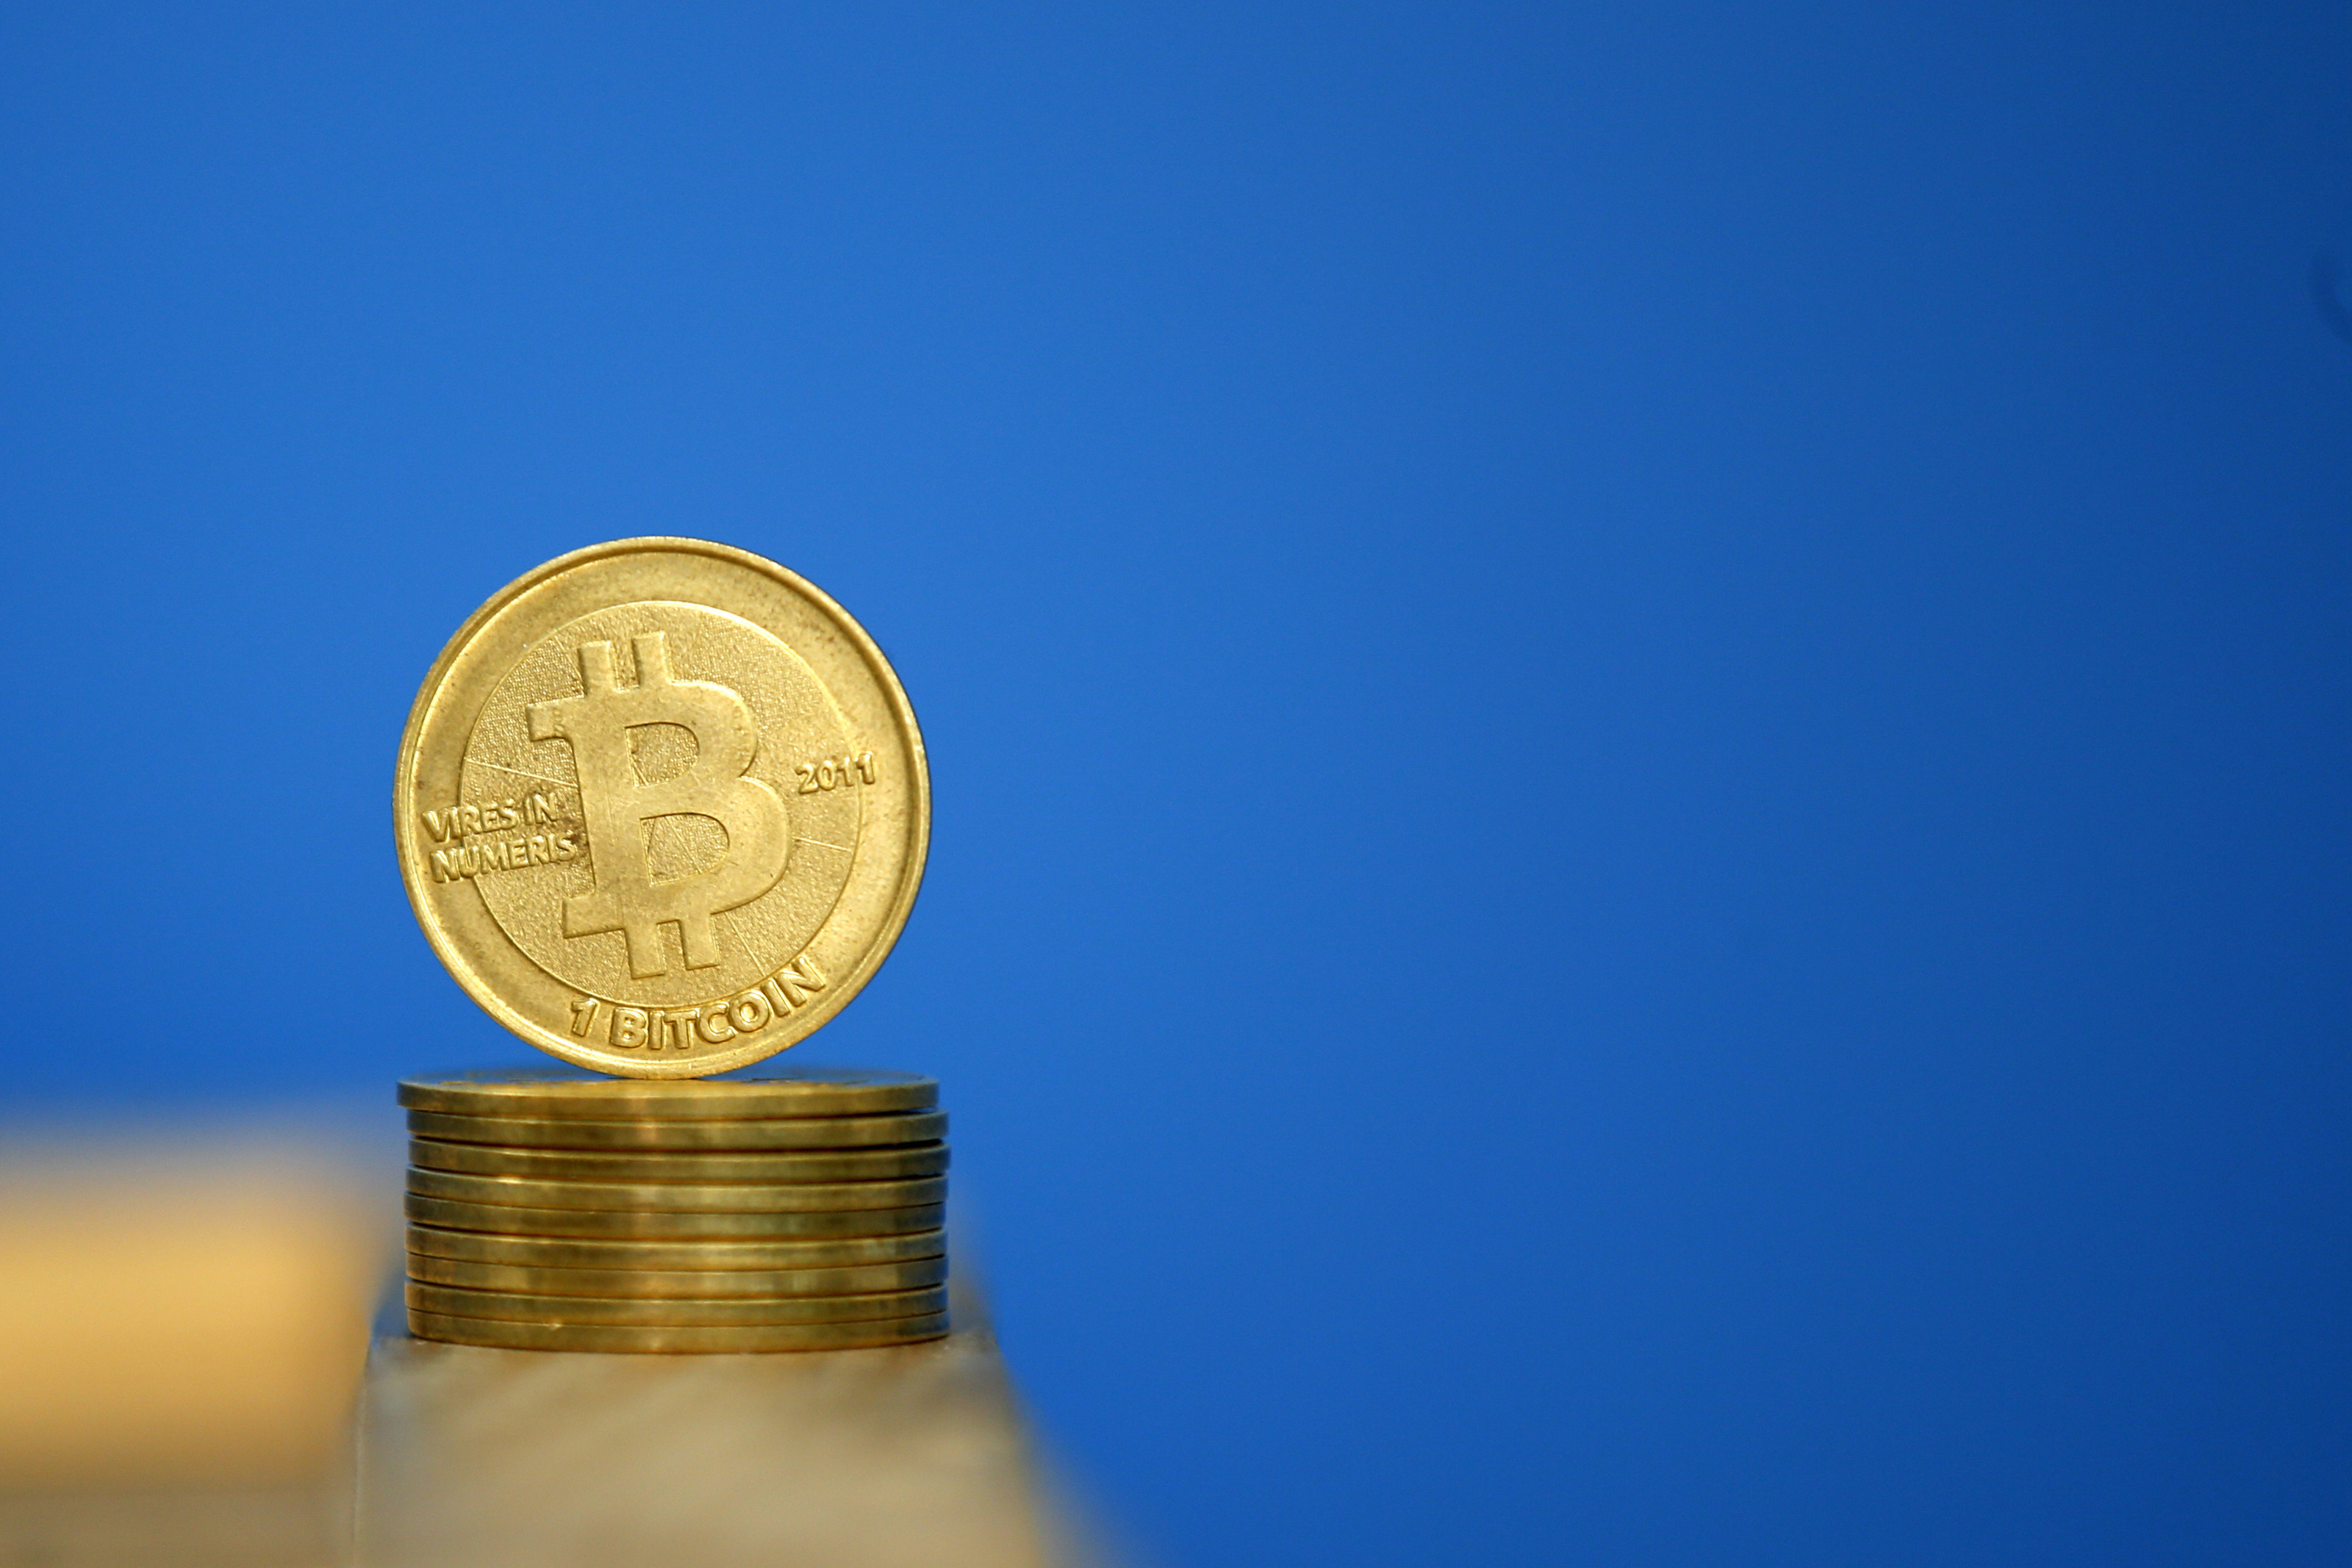 Bitcoin (virtual currency) coins are seen in an illustration picture taken at La Maison du Bitcoin in Paris July 11, 2014. French police dismantled an illegal Bitcoin exchange and seized 388 virtual currency units worth some 200,000 euros ($272,800) in the first such operation in Europe a public prosecutor said on Monday.   REUTERS/Benoit Tessier (FRANCE - Tags: BUSINESS) - PM1EA7B1GUS01